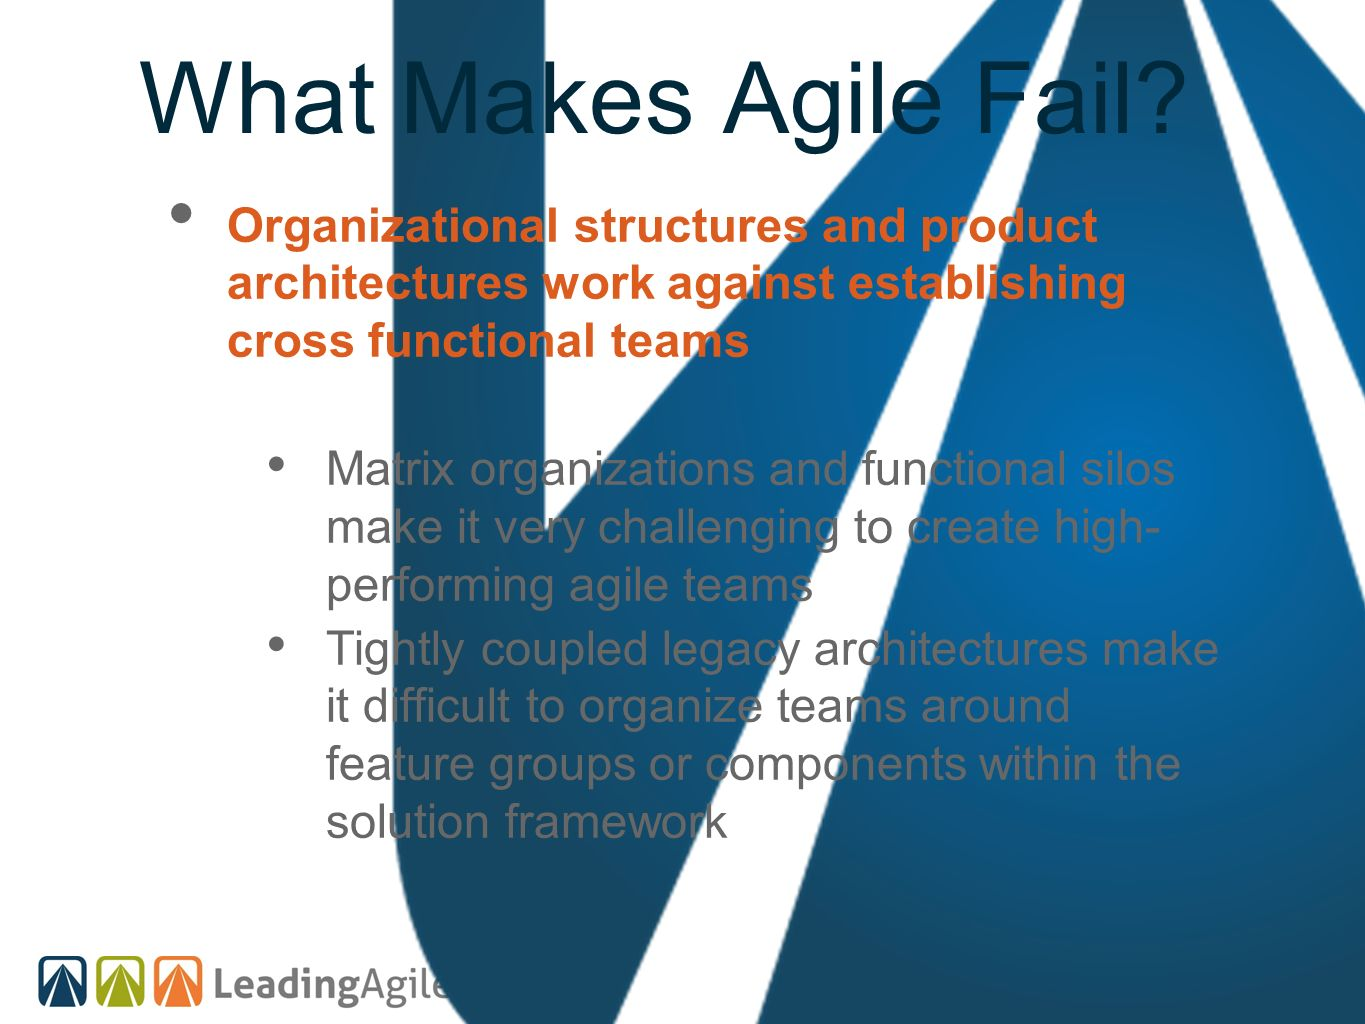 What Makes Agile Fail Organizational structures and product architectures work against establishing cross functional teams.